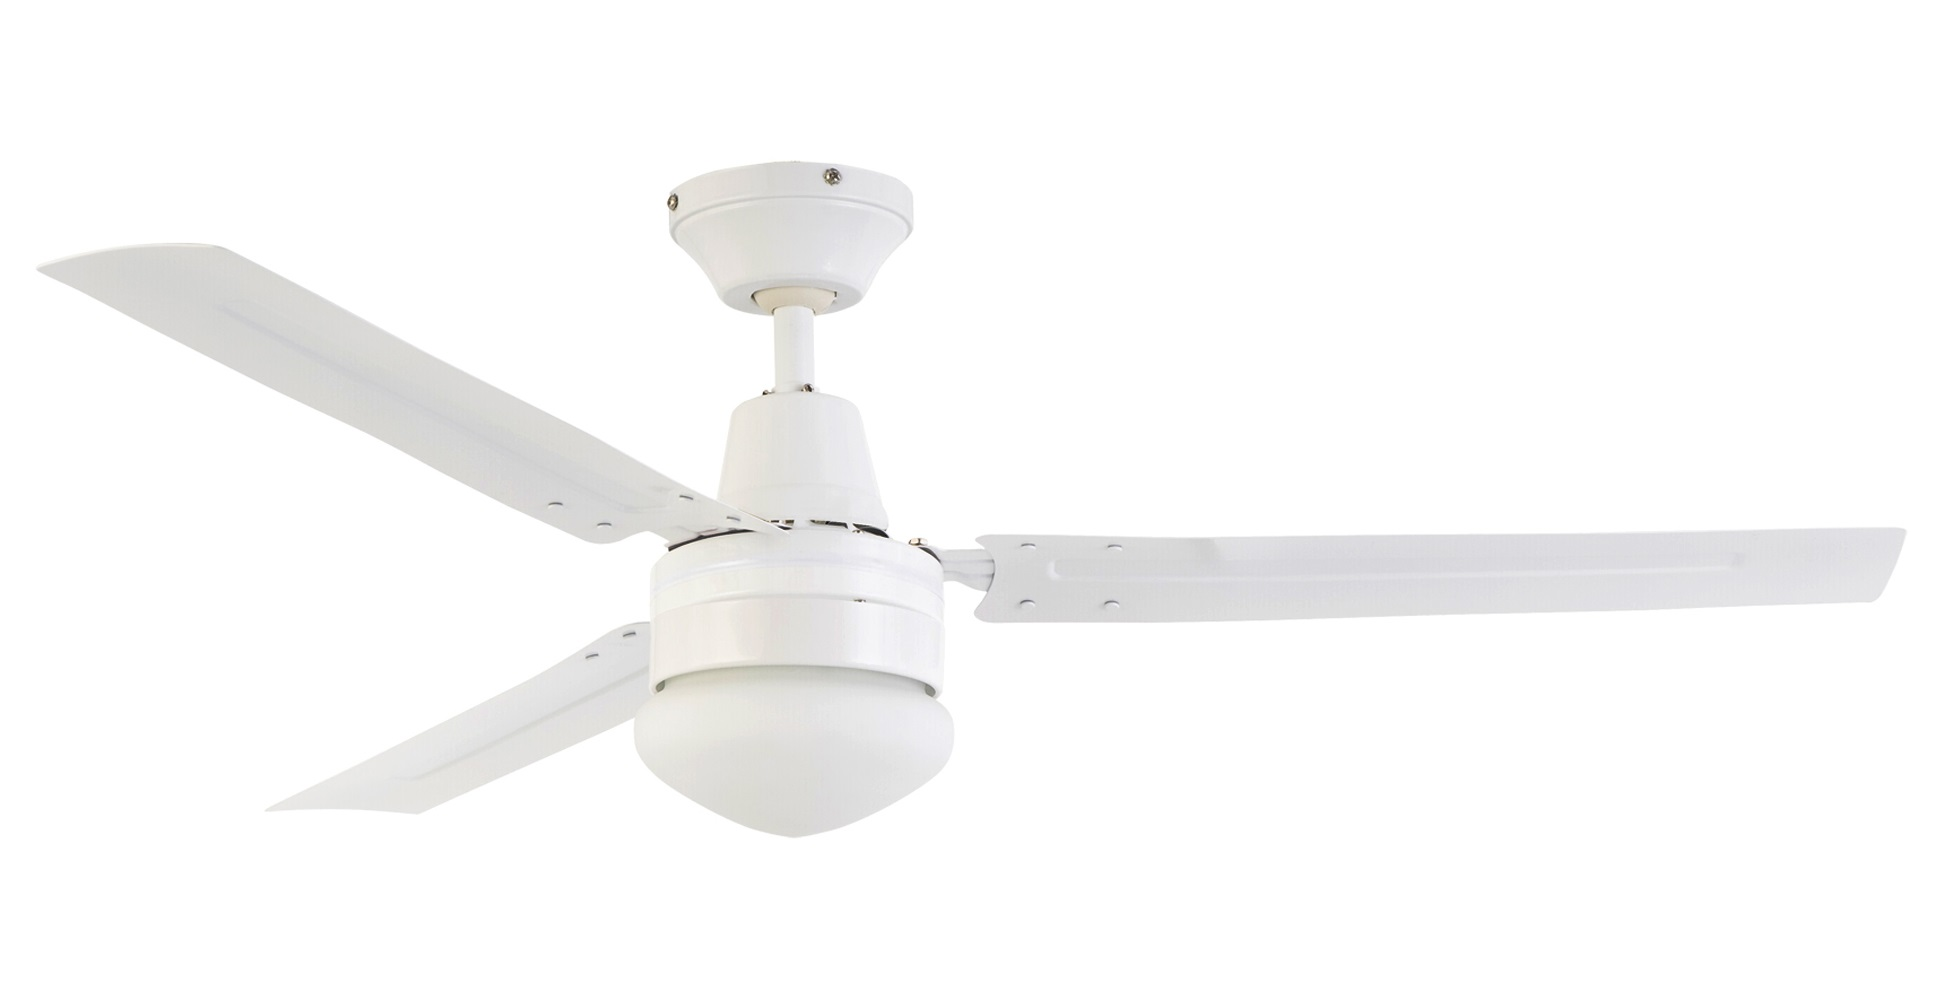 Arlec 75cm Little Max Ceiling Fan Review Ceiling Fans Ideas